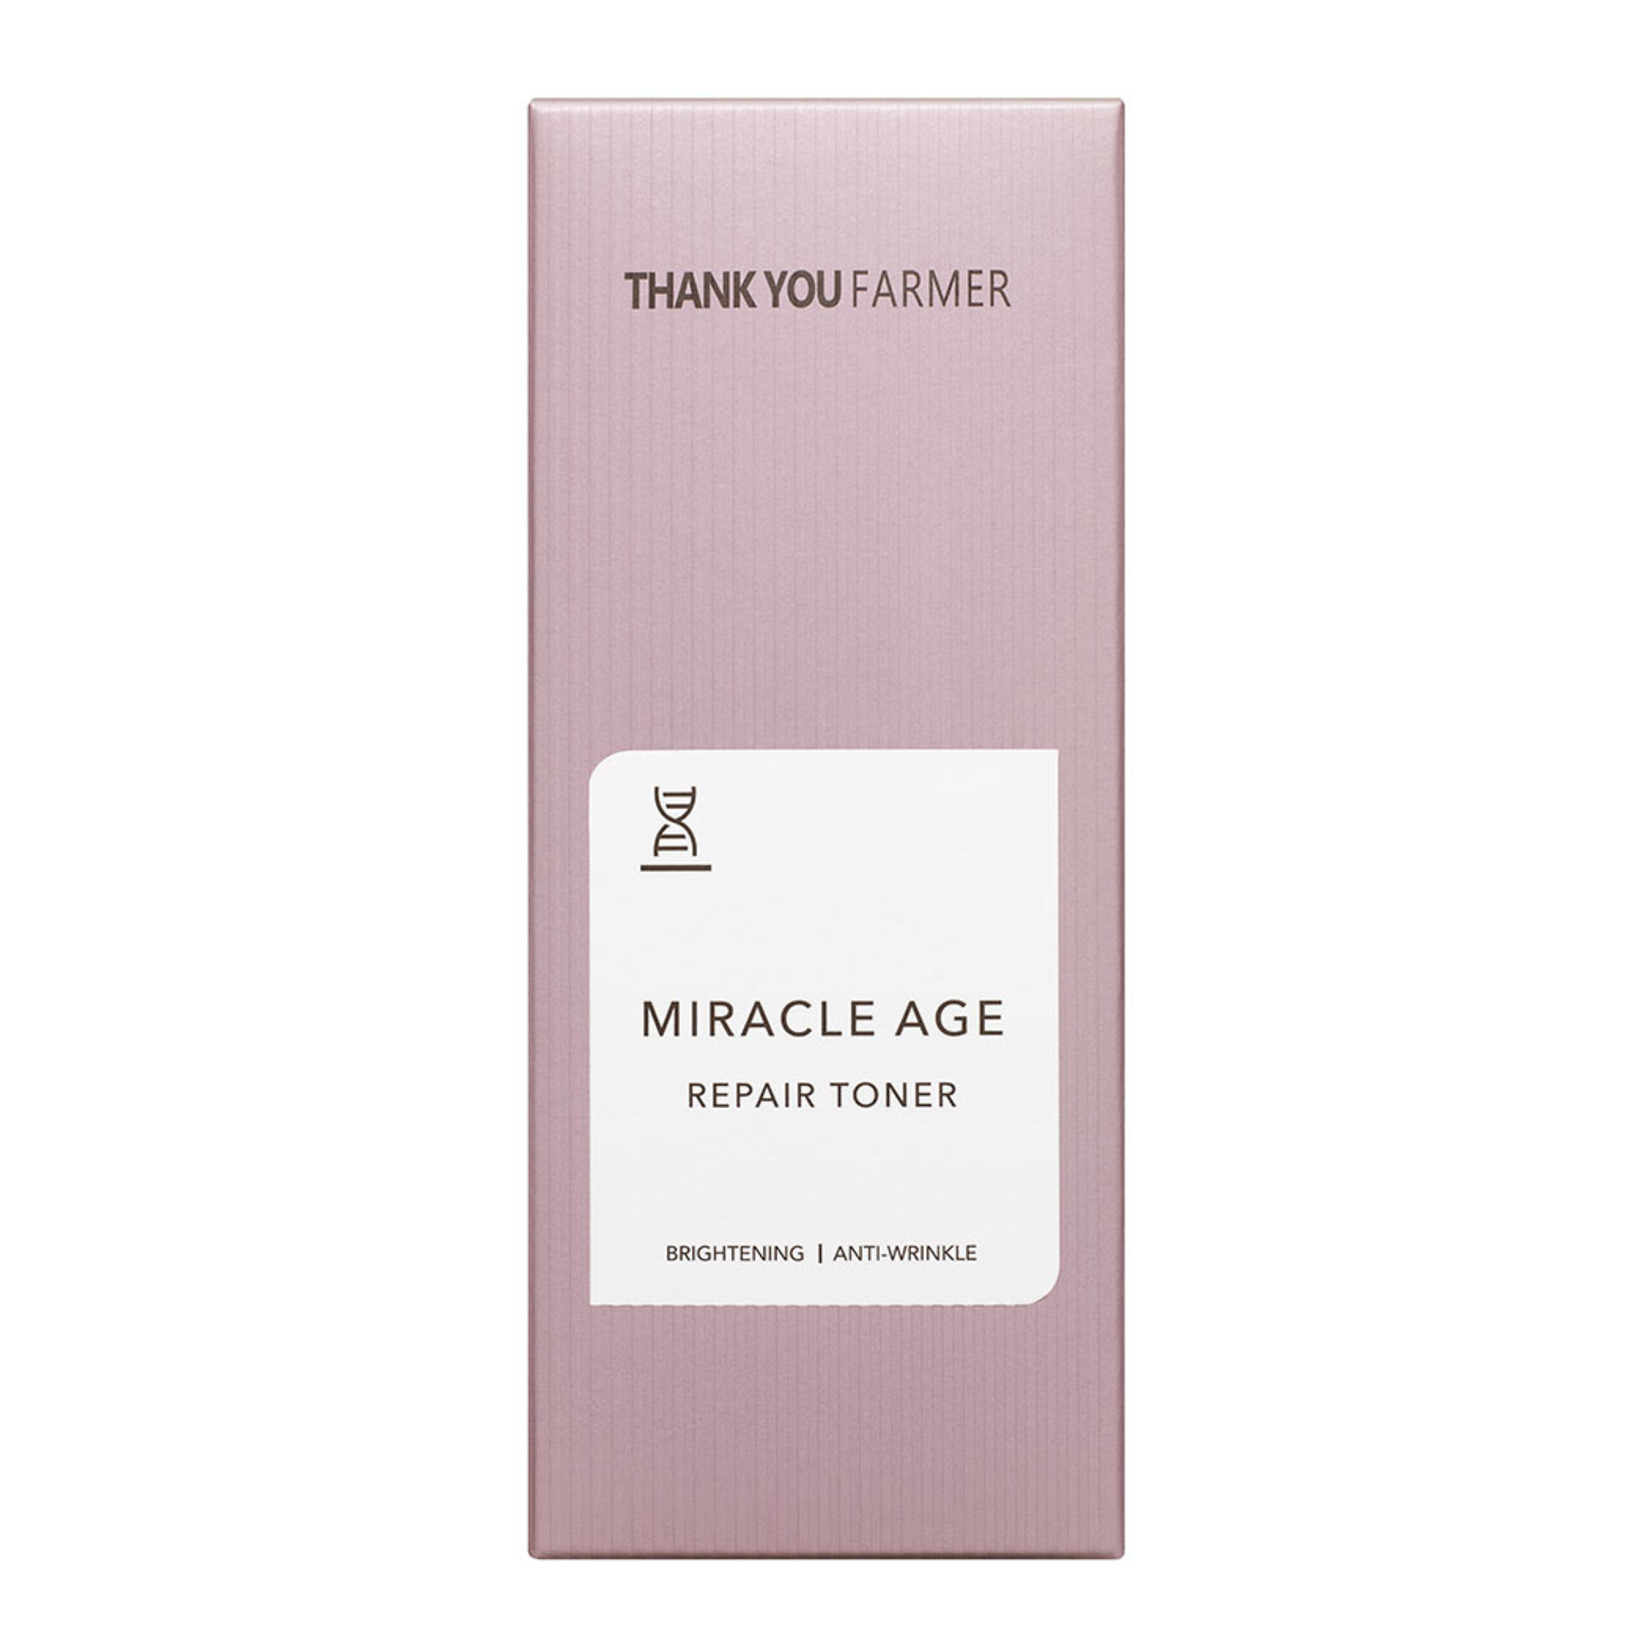 Thank You Farmer Miracle Age Repair Toner